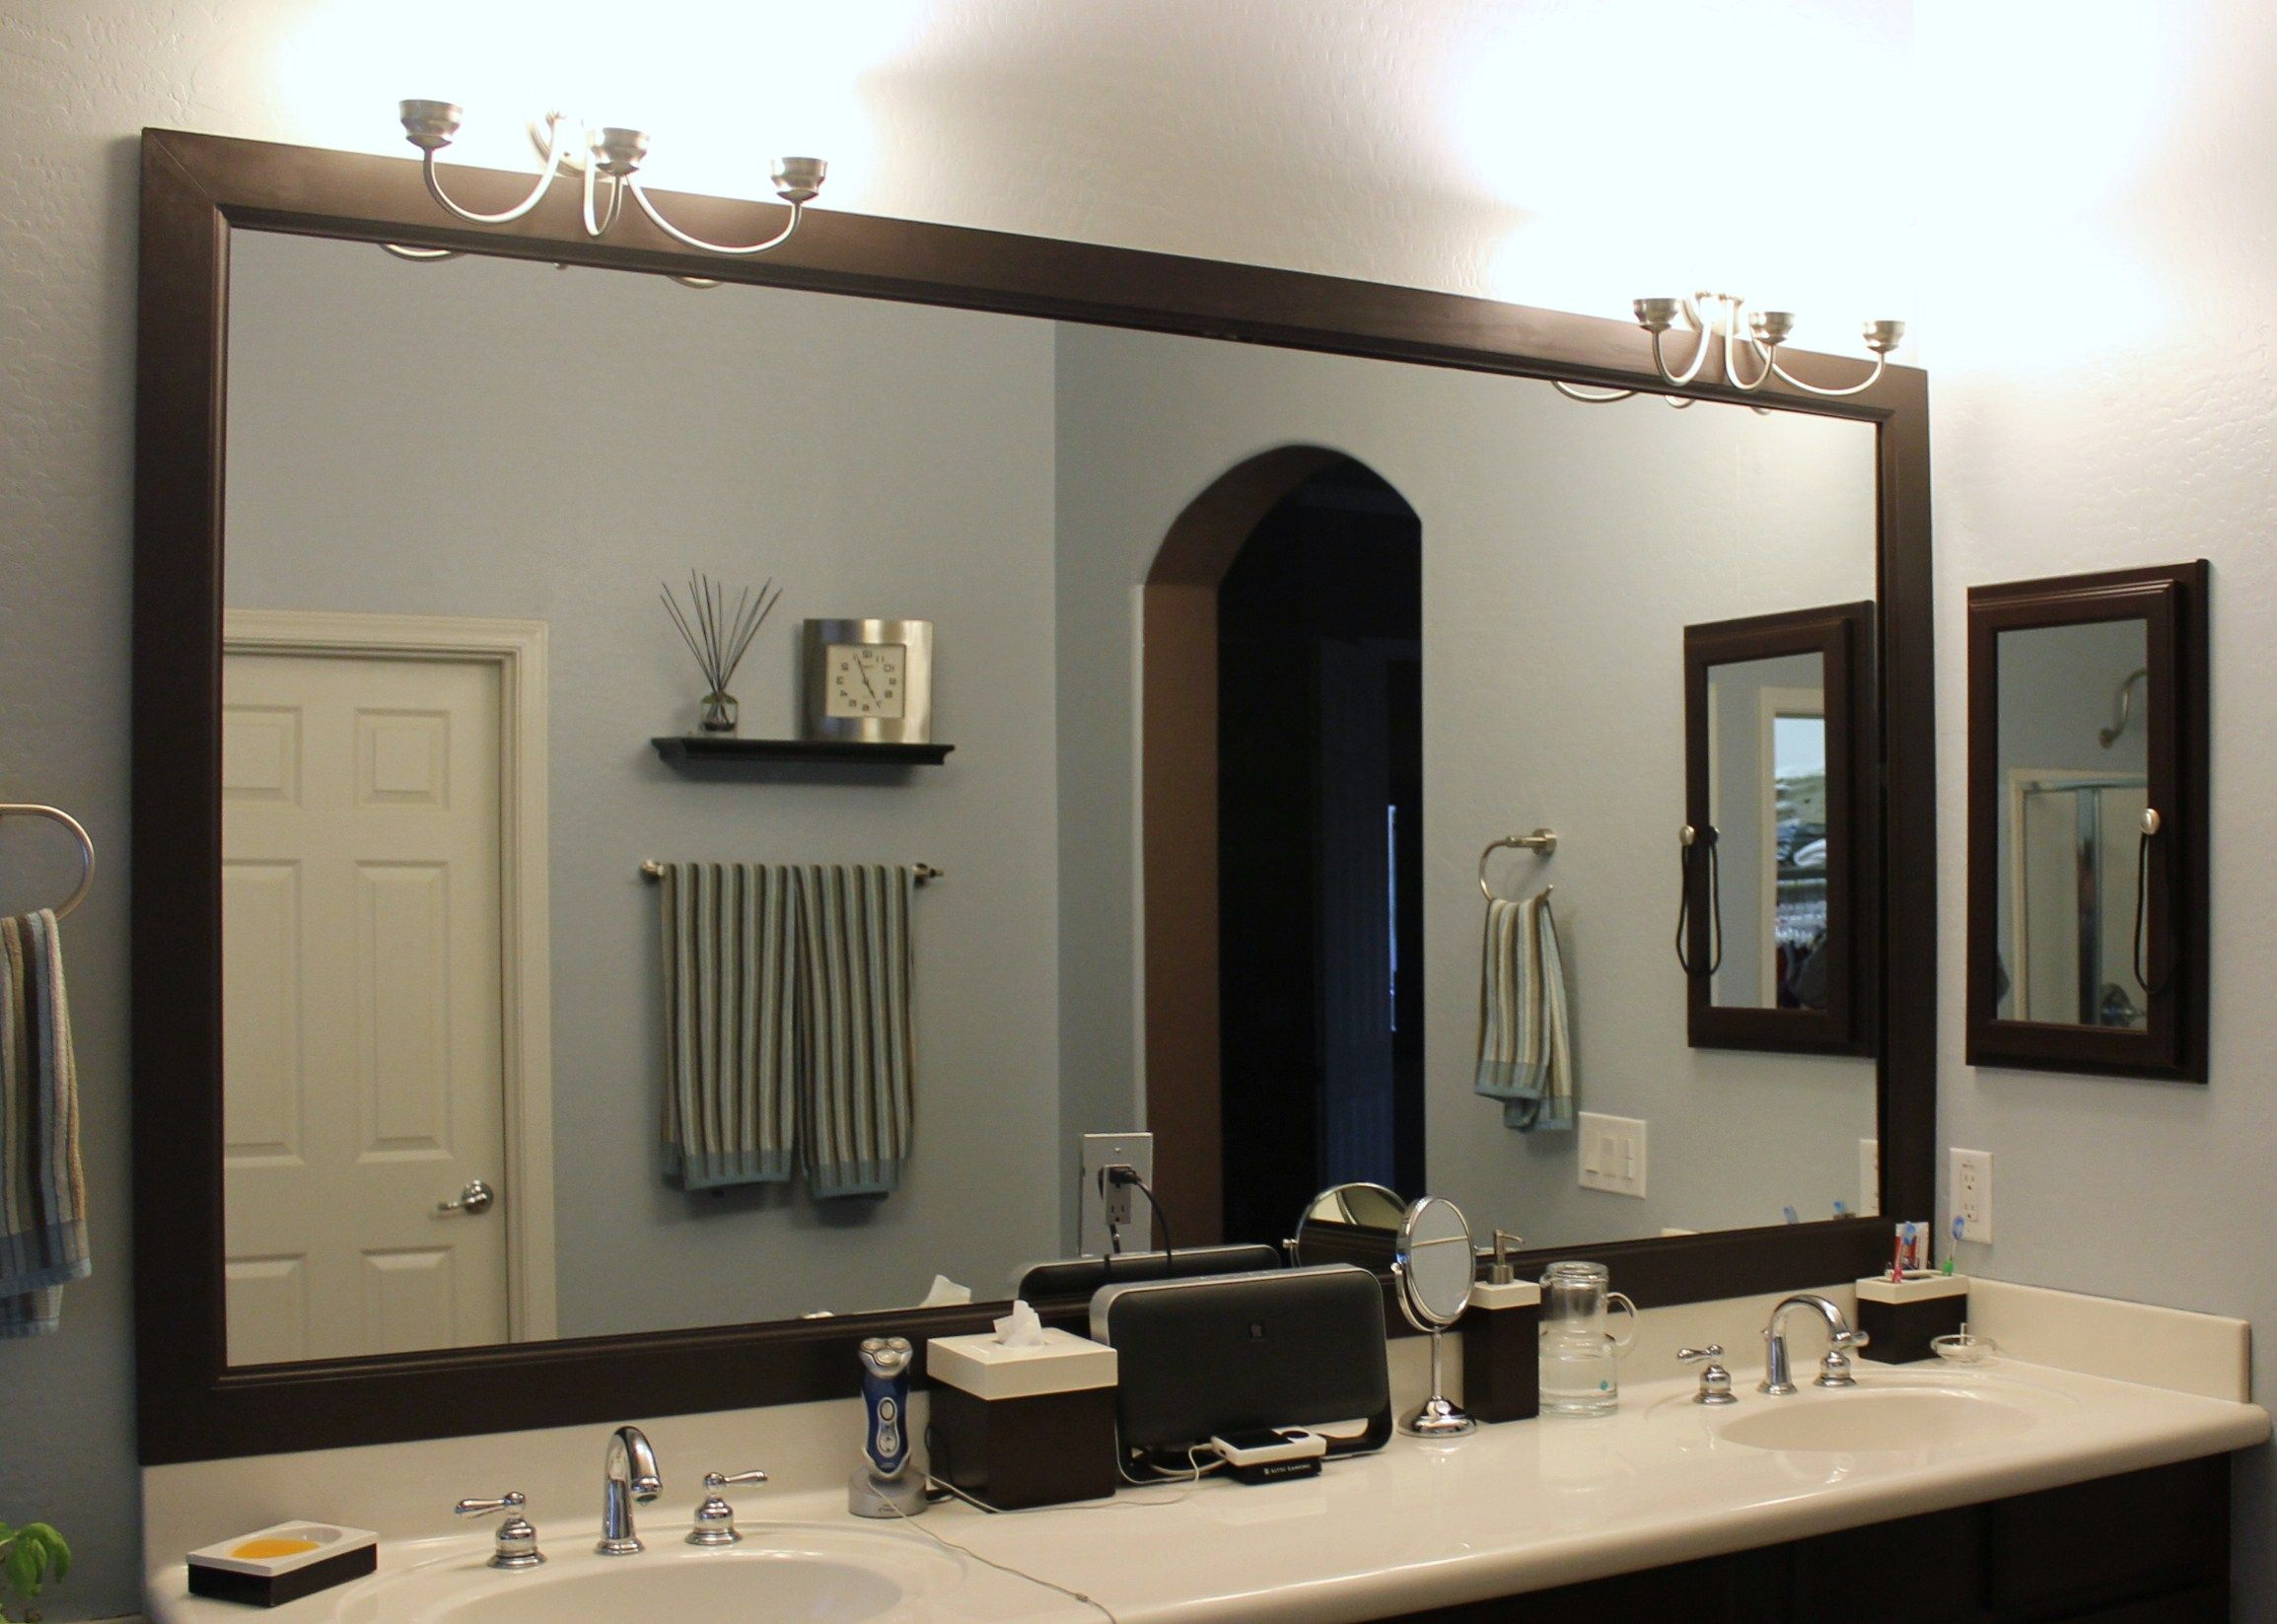 Framed bathroom mirrors ideas - Mirror Fascinasting Fascinasting Diy Bathroom Mirror Frame Ideas